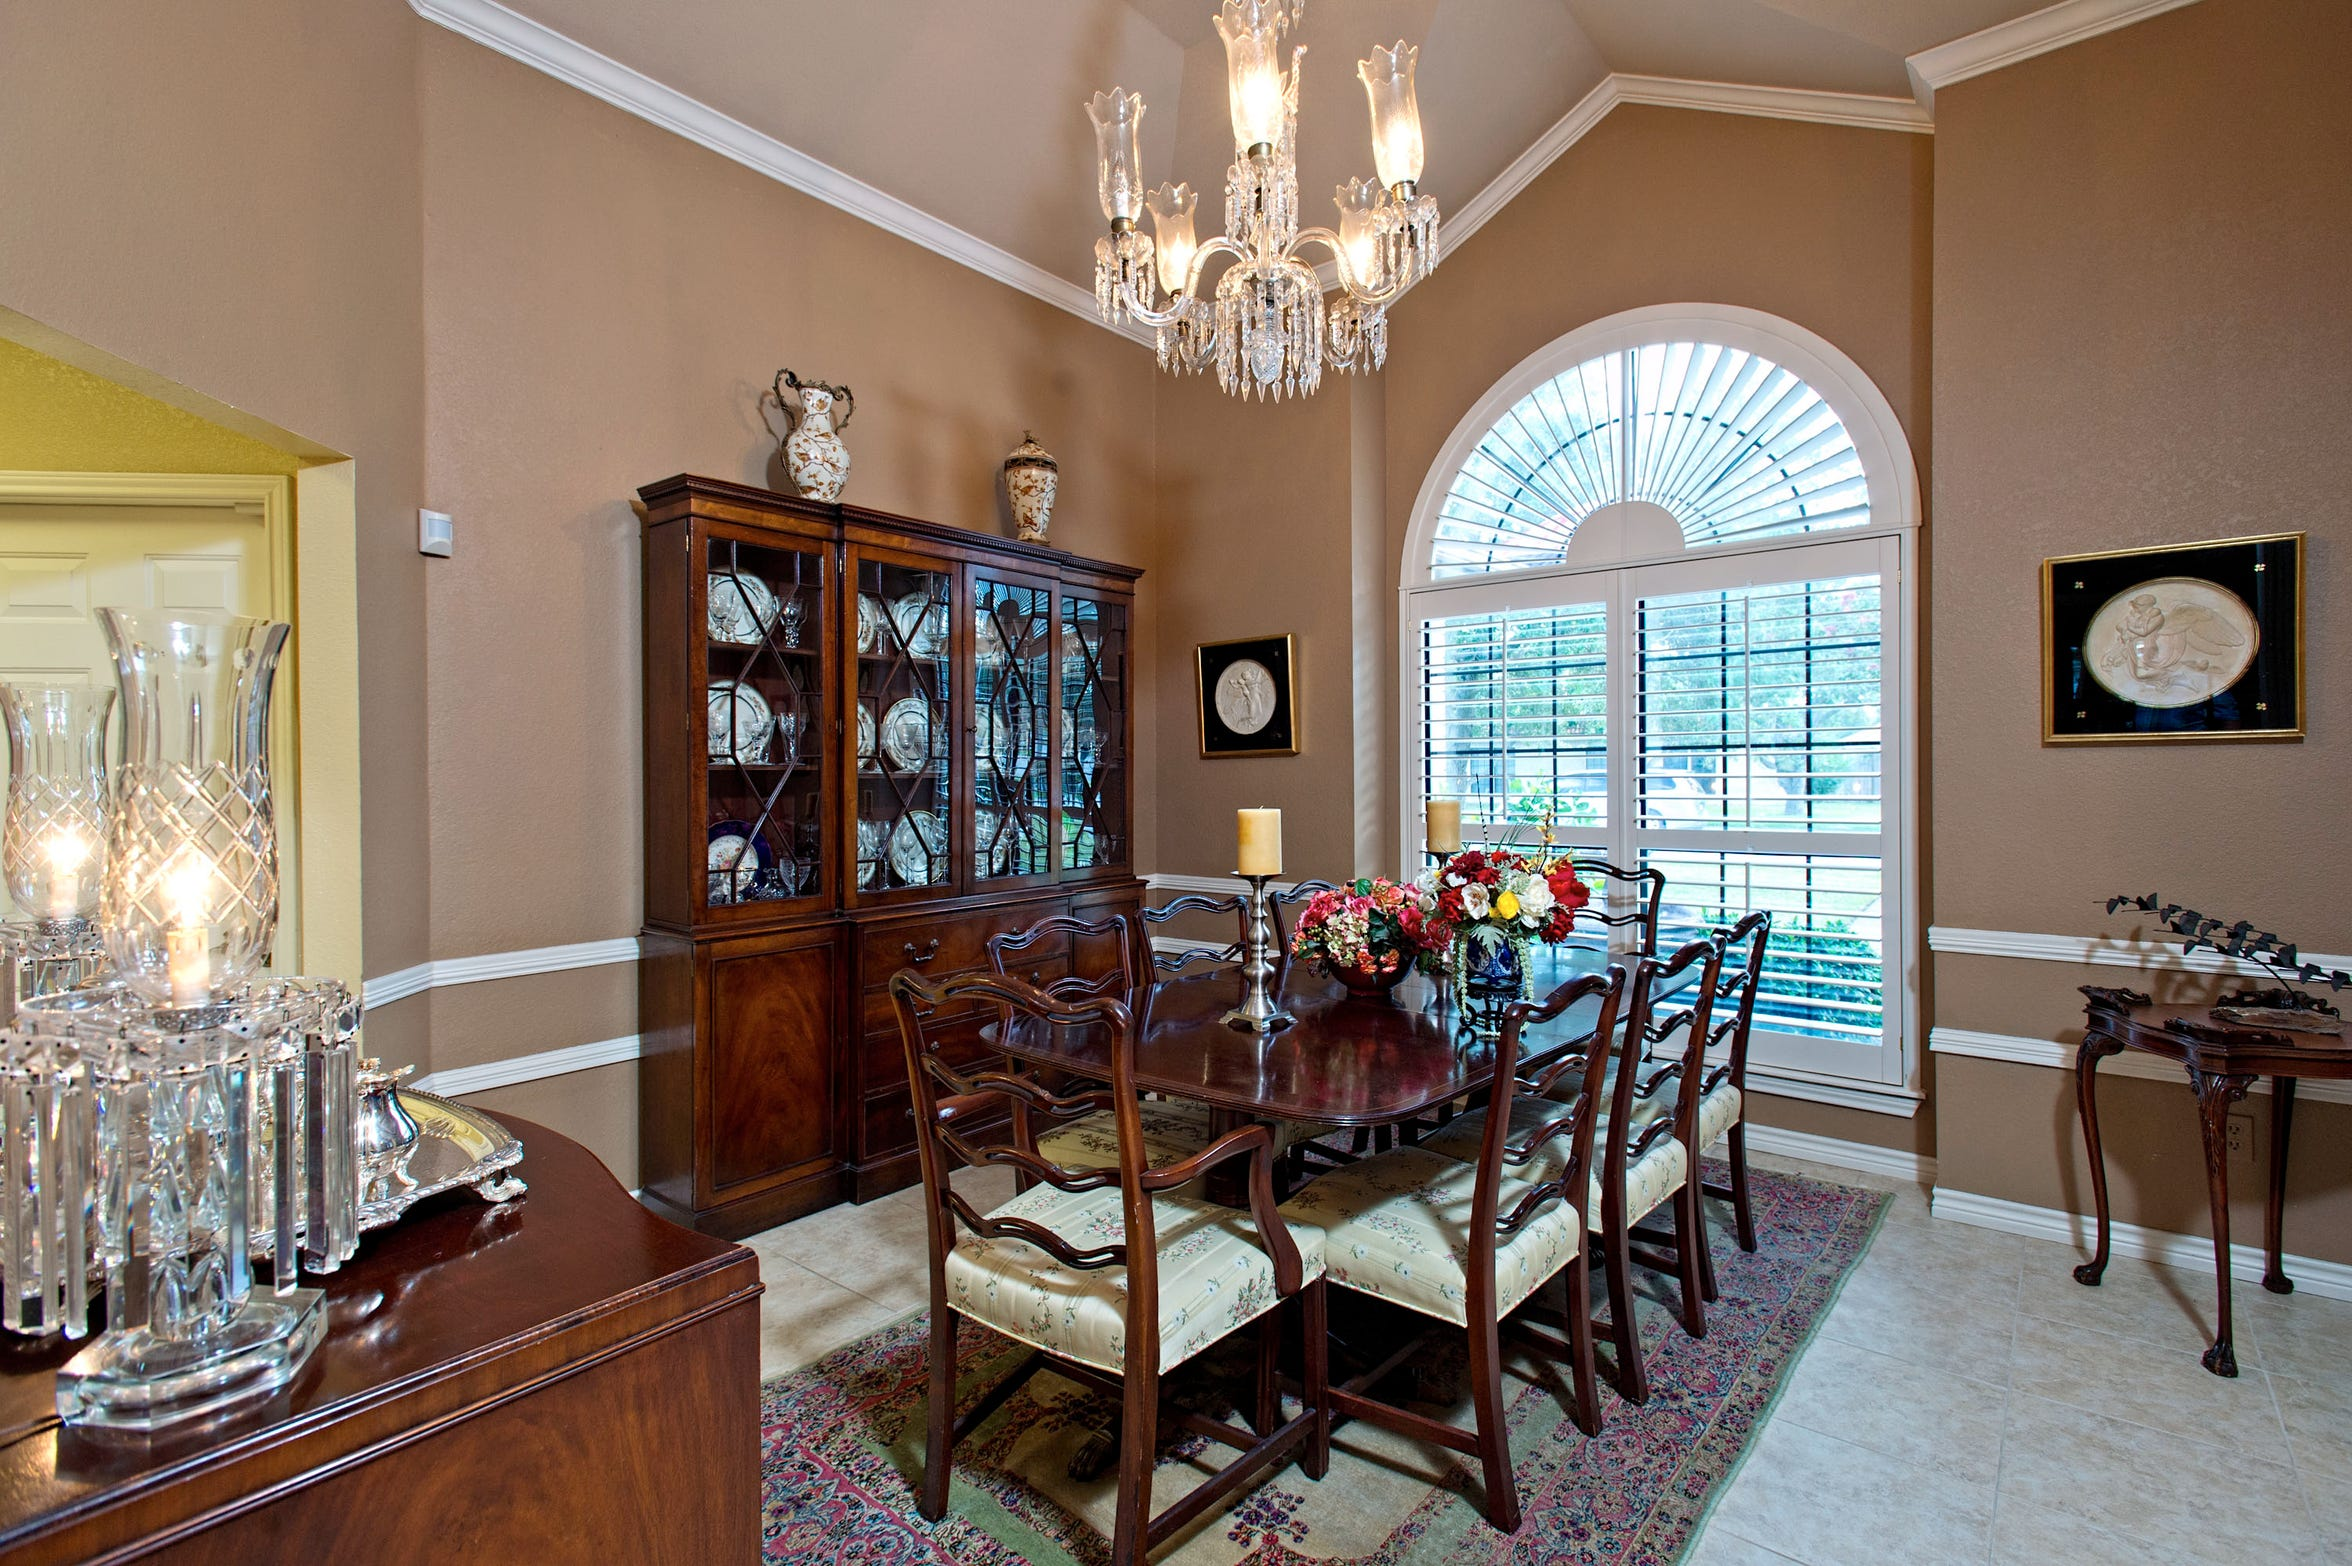 Dine in style in the formal dining room, open to the entry and living space; the area features a cathedral ceiling, crown molding and a beautiful plantation shuttered arched window.